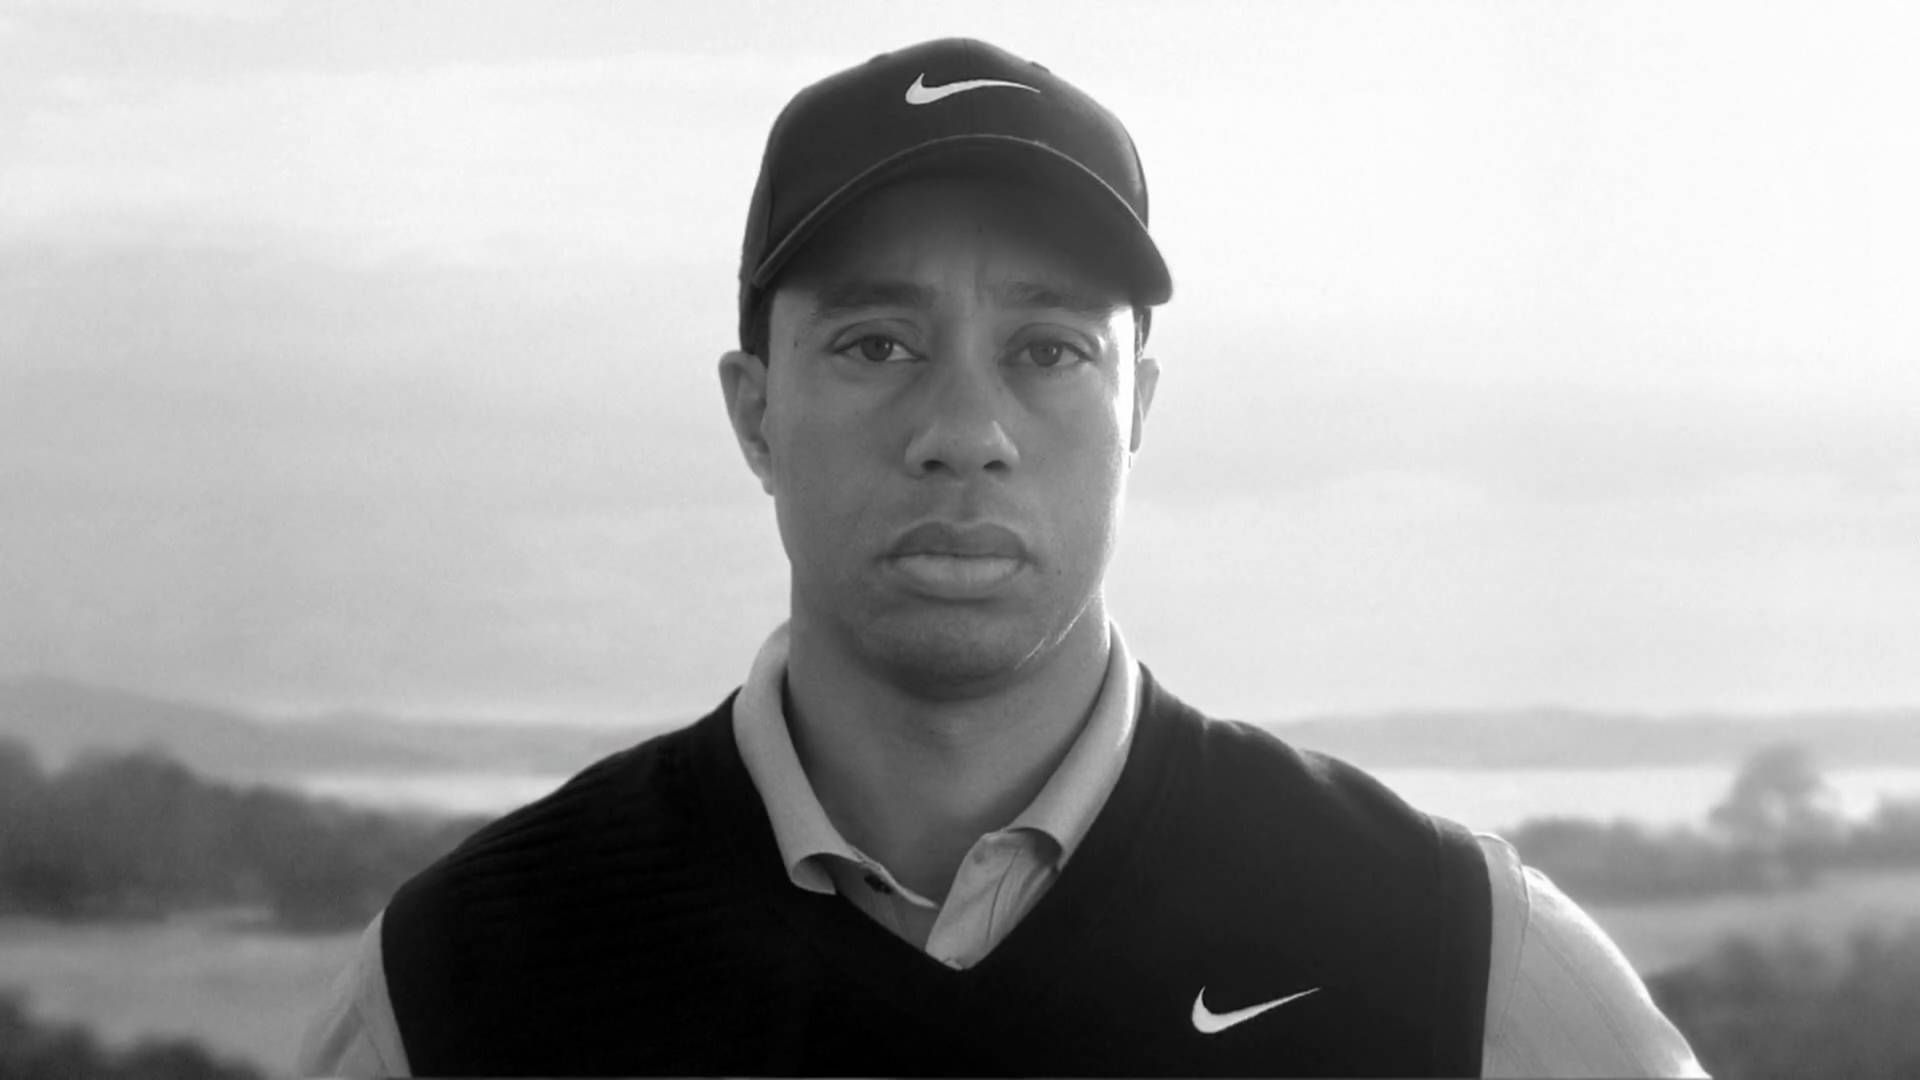 Earl asks his son Tiger a few questions before Tiger's return to golf.